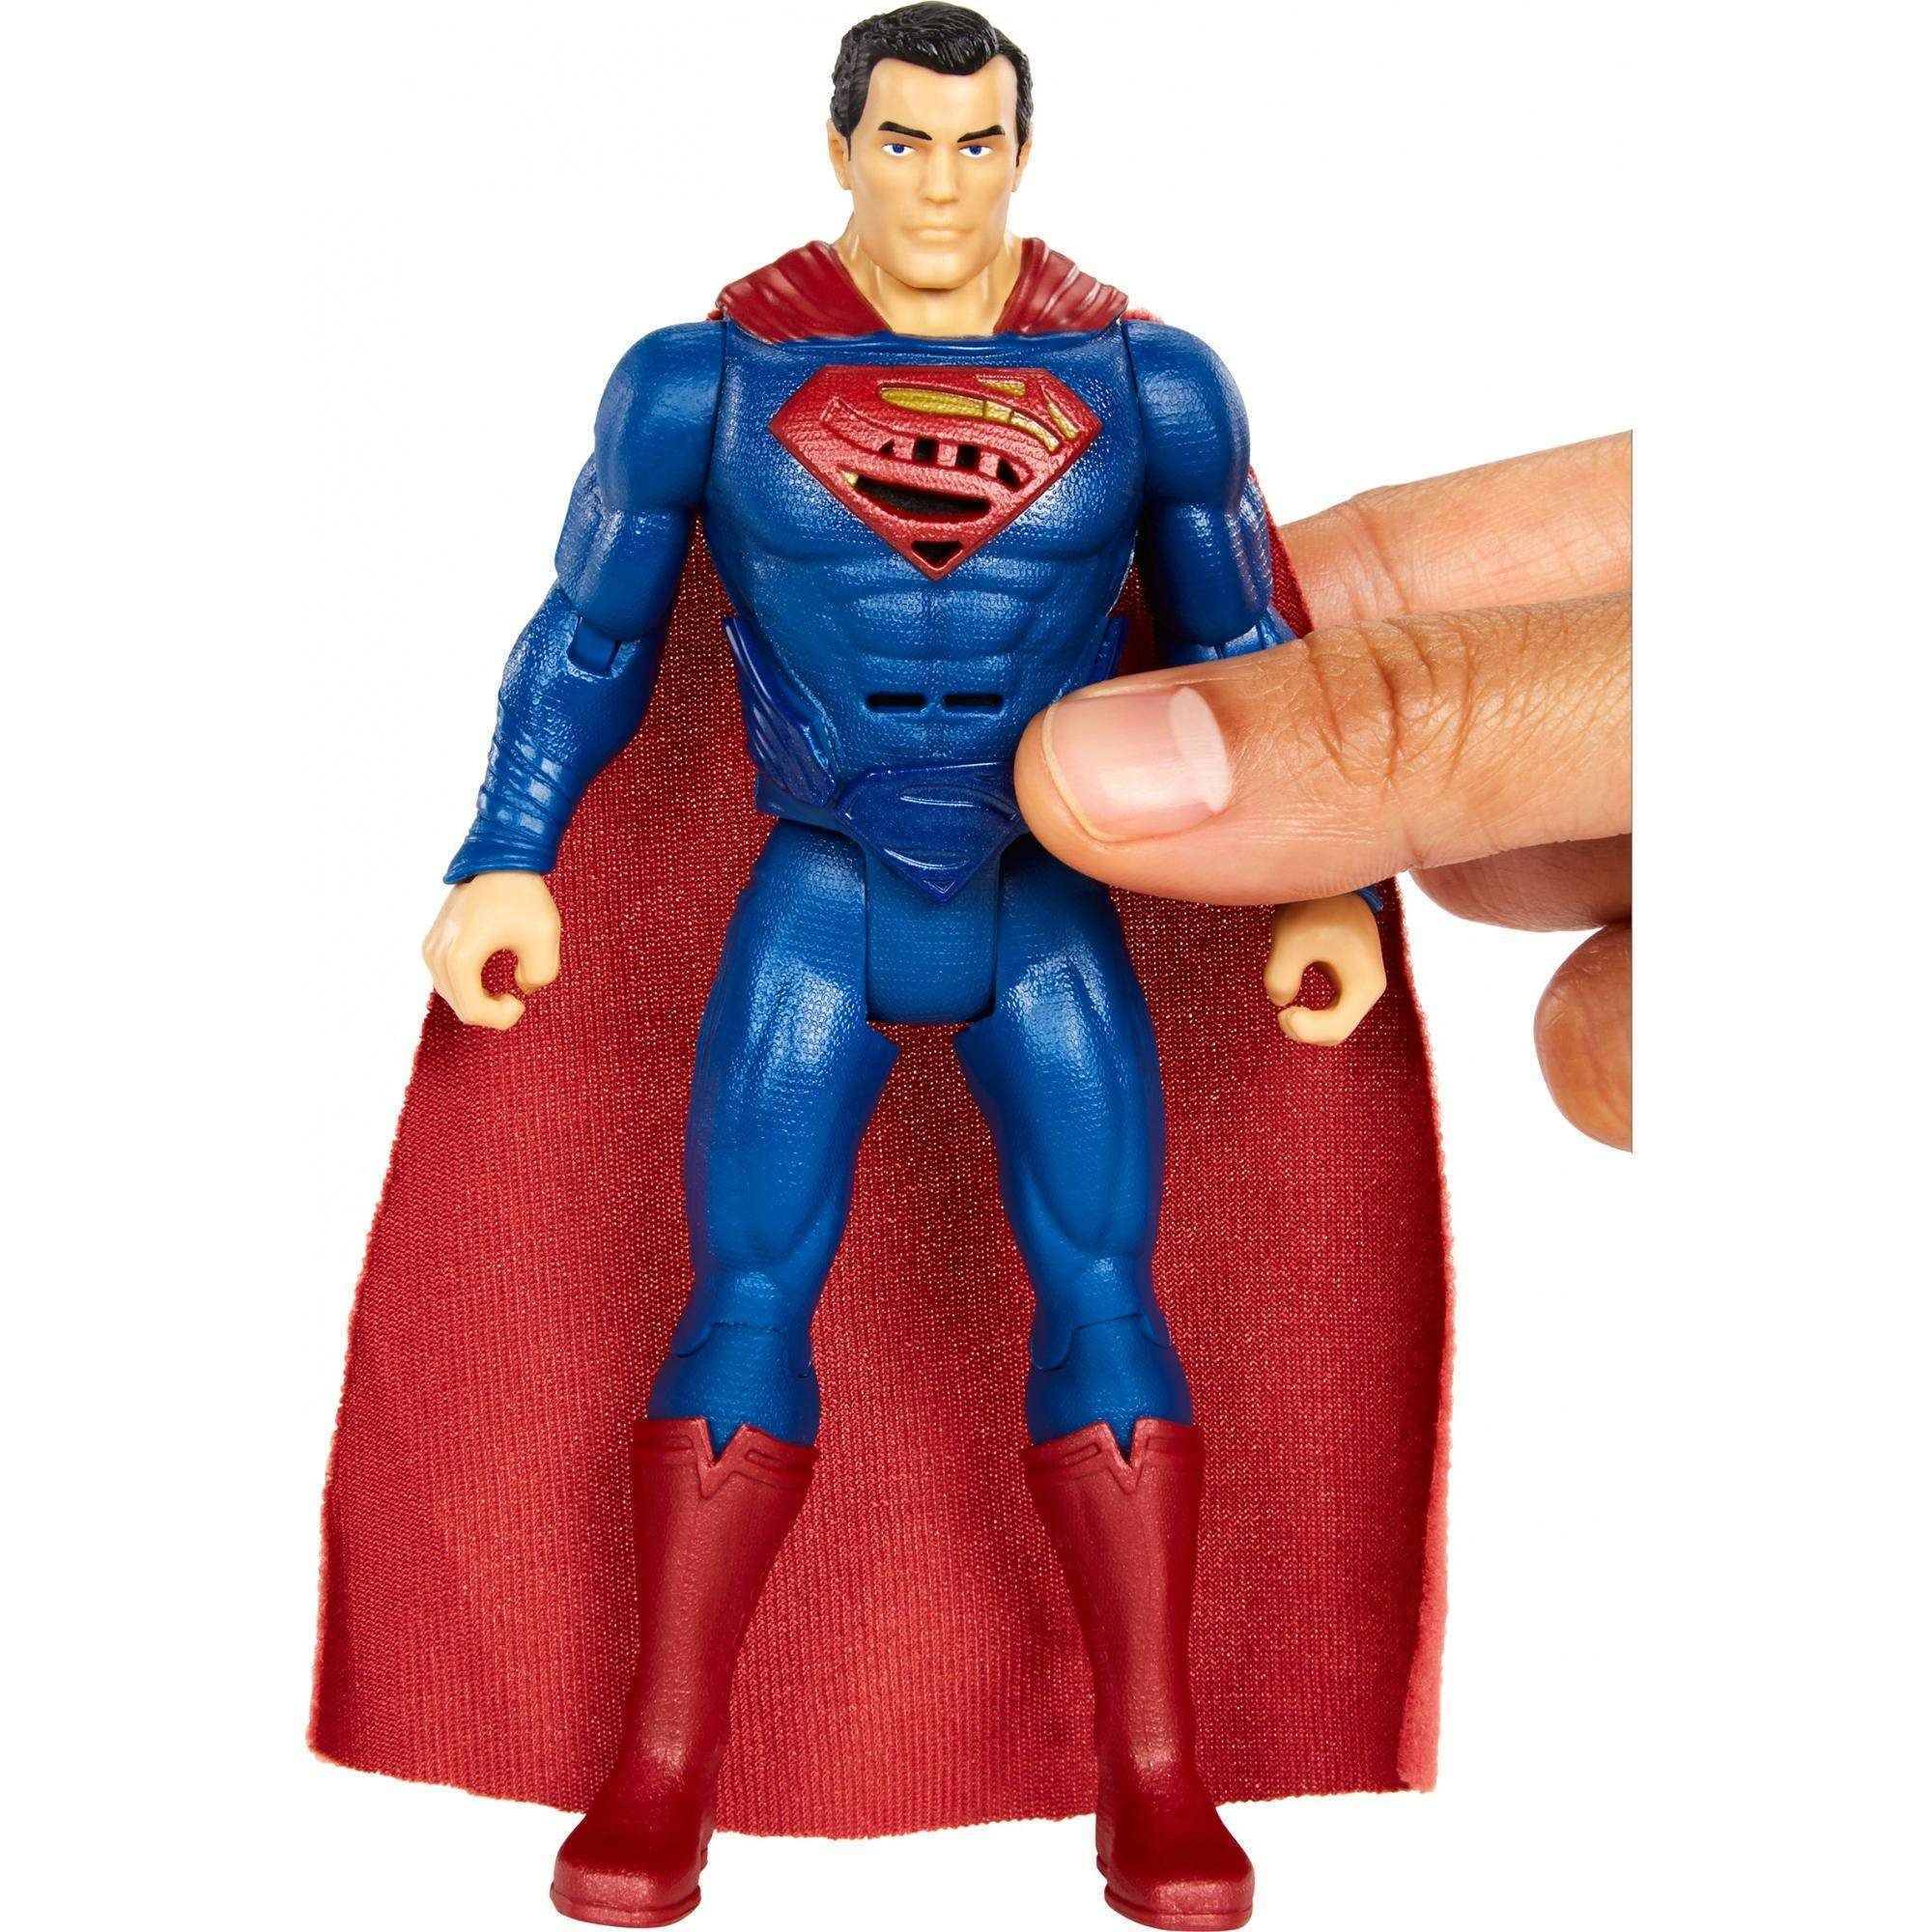 "DC Justice League Talking Heroes Superman 6"" Figure"